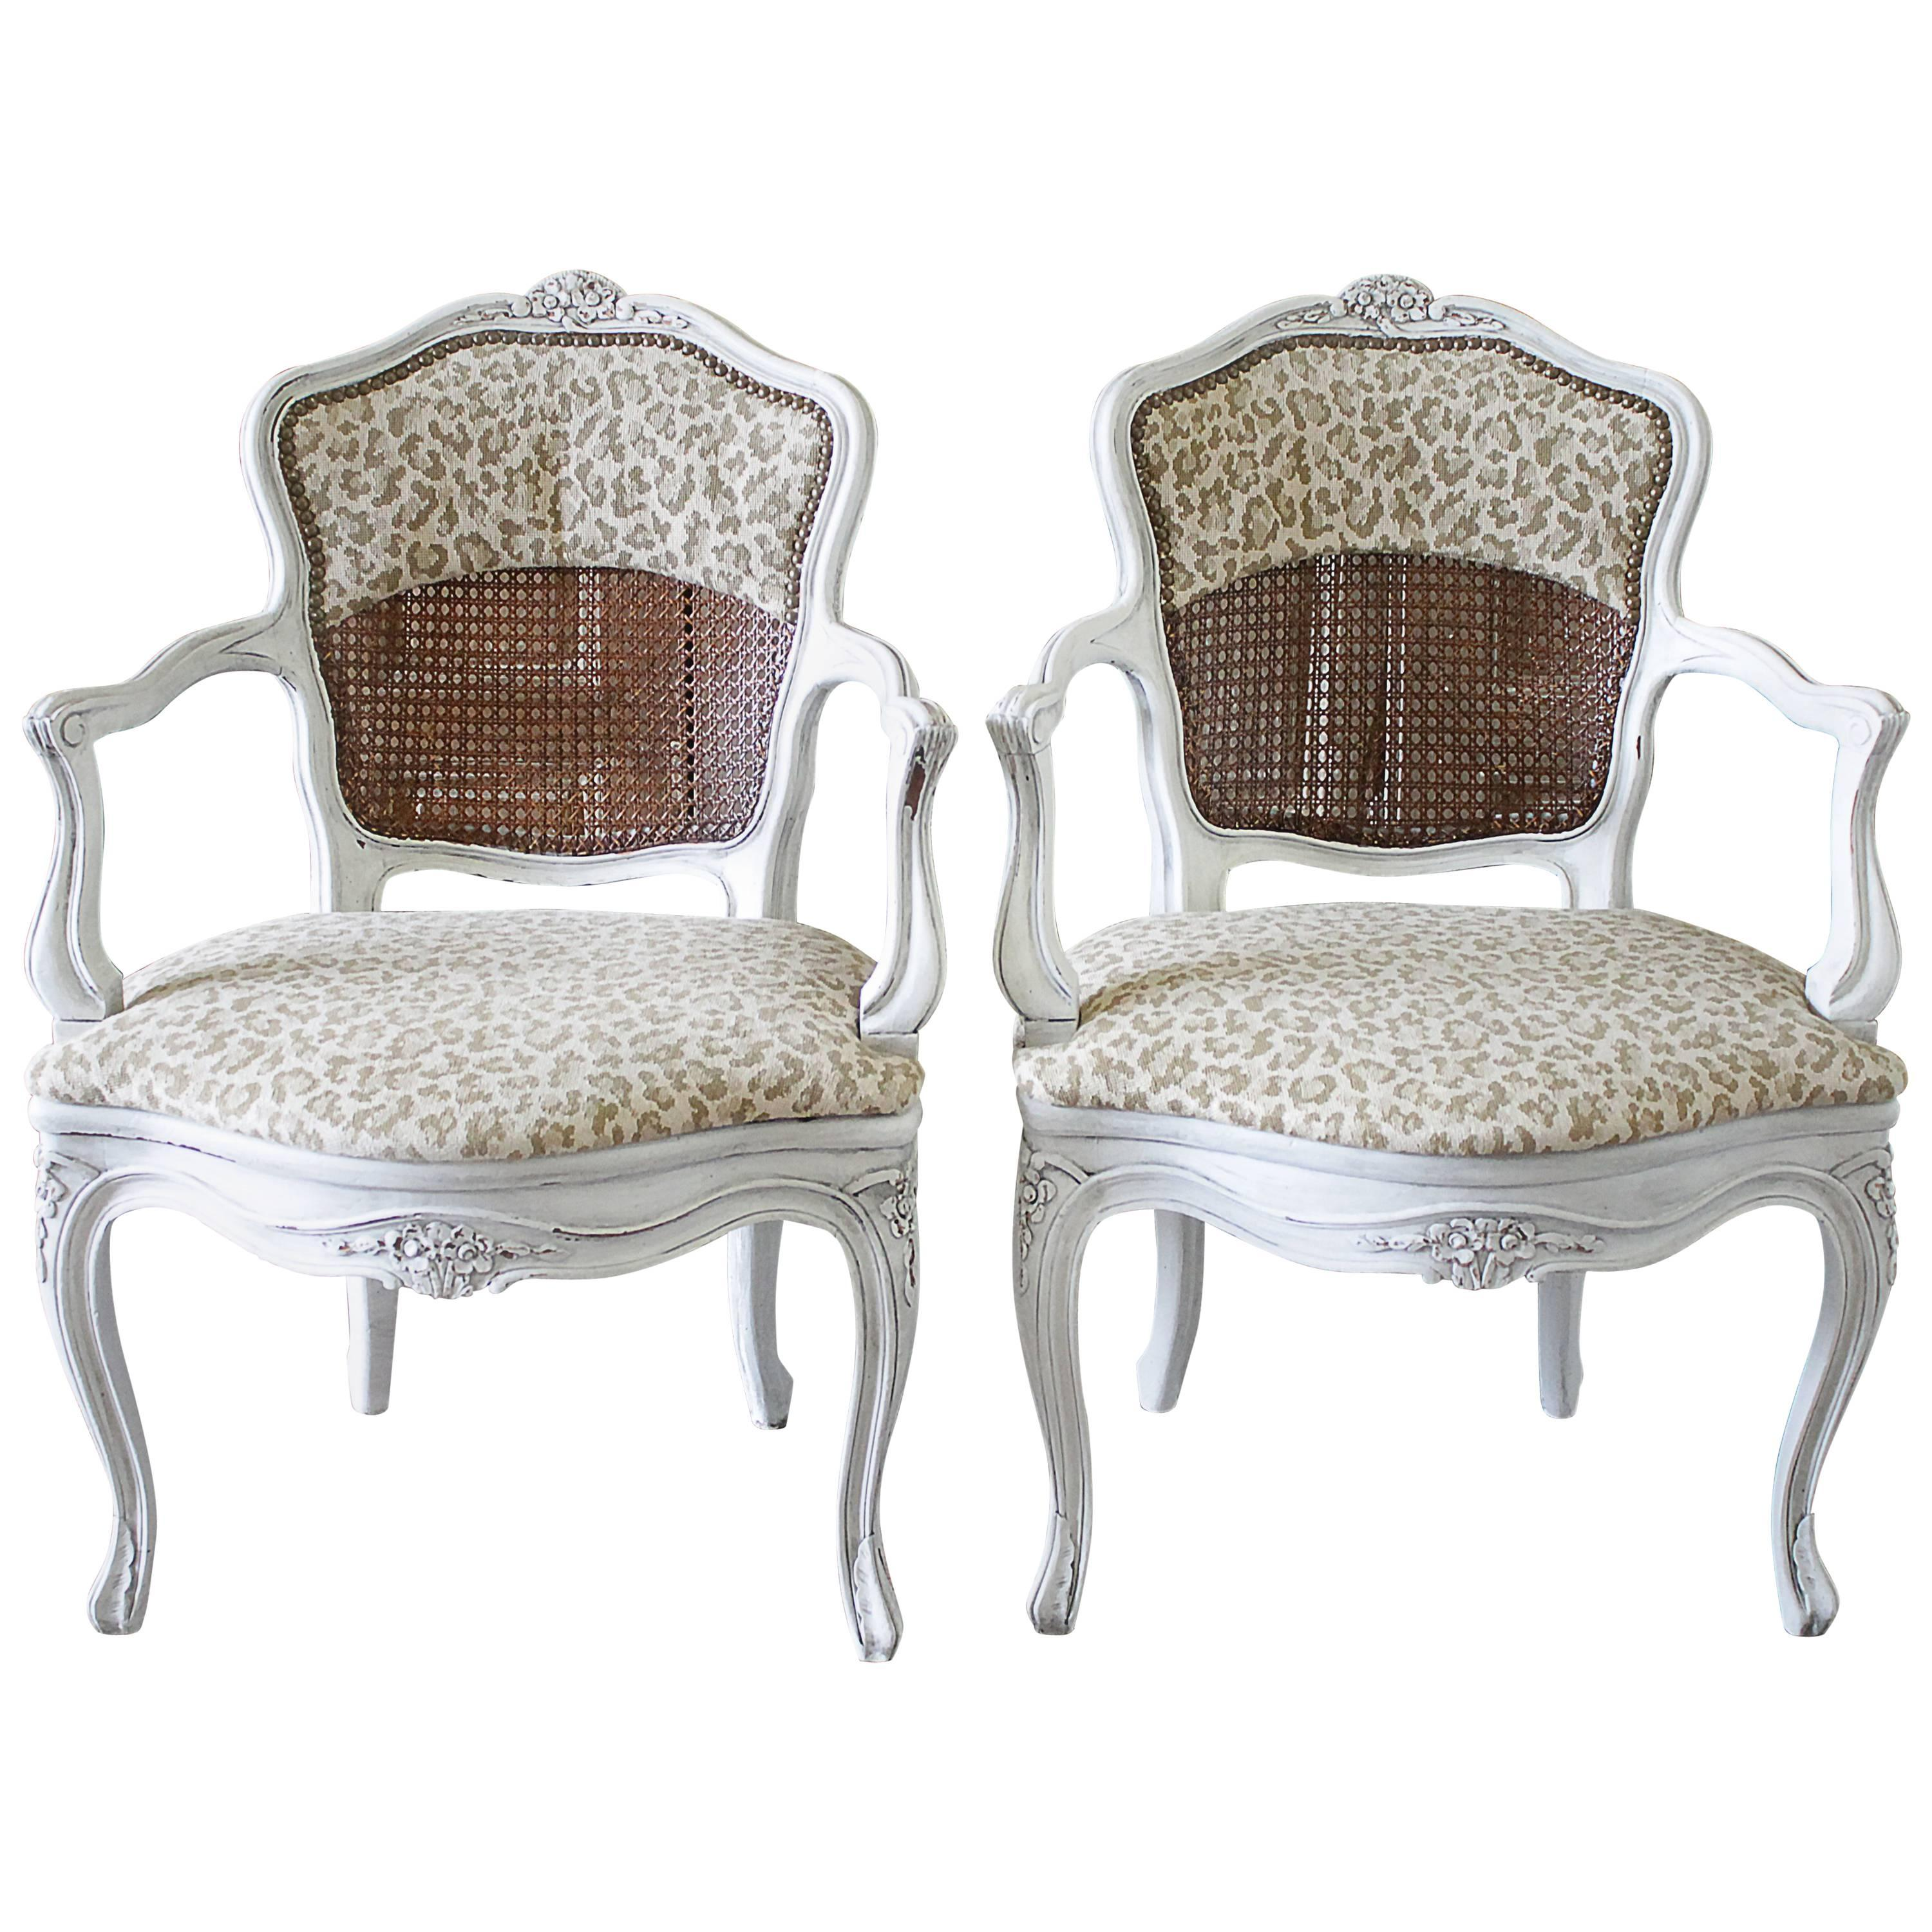 antique cane chairs cheap modern rocking chair pair of country french with leopard upholstery at 1stdibs